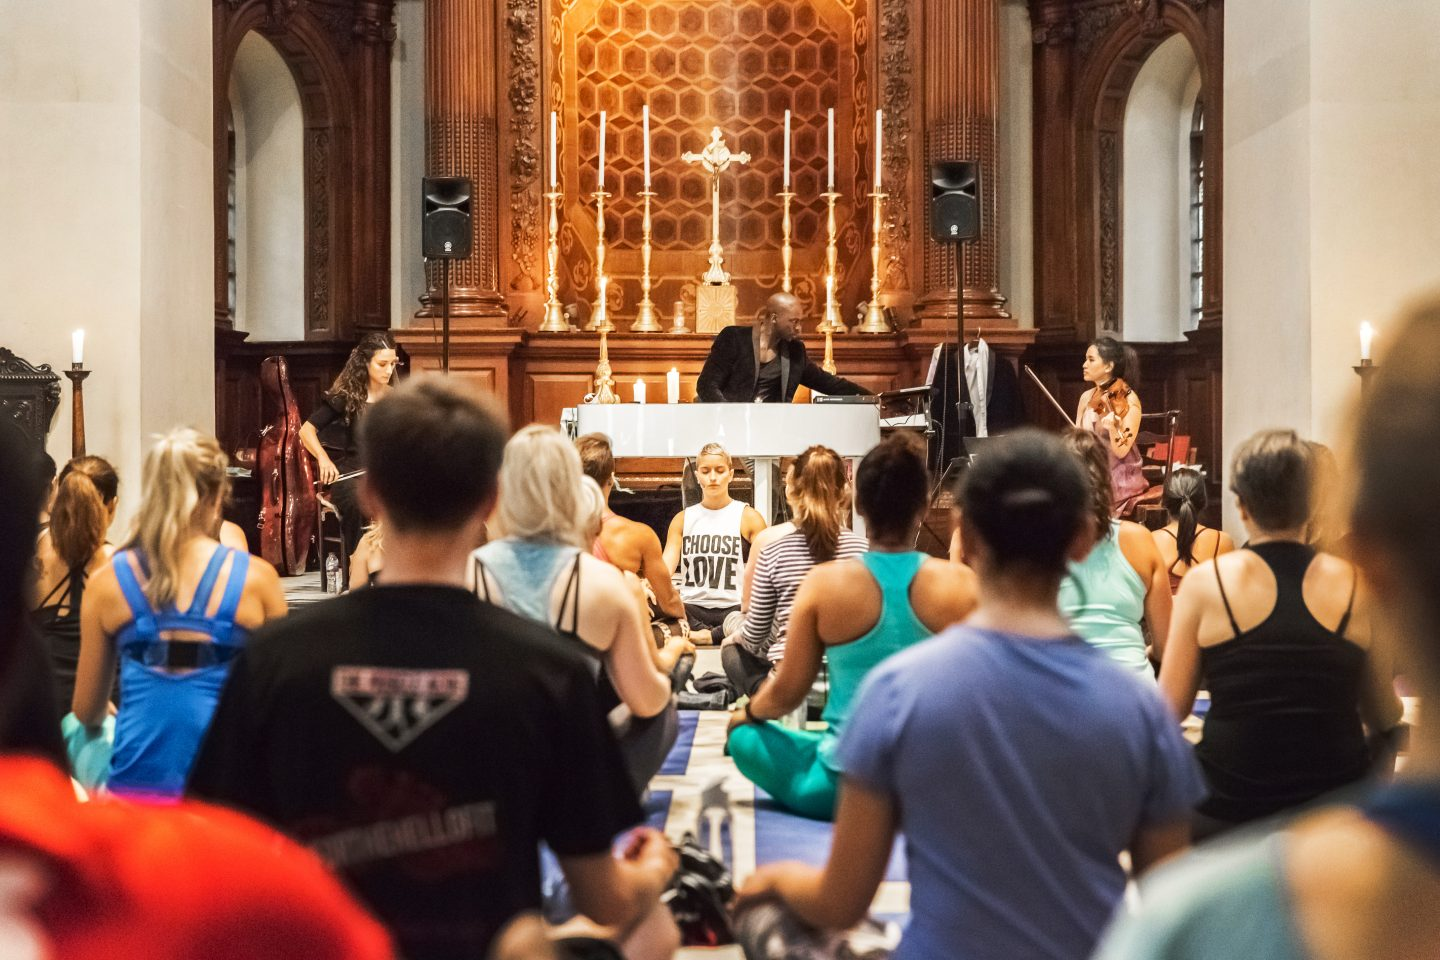 People sit crossed-legged on yoga mats in a beautiful church with a live orchestra playing music. Wellness, Gameplan A.